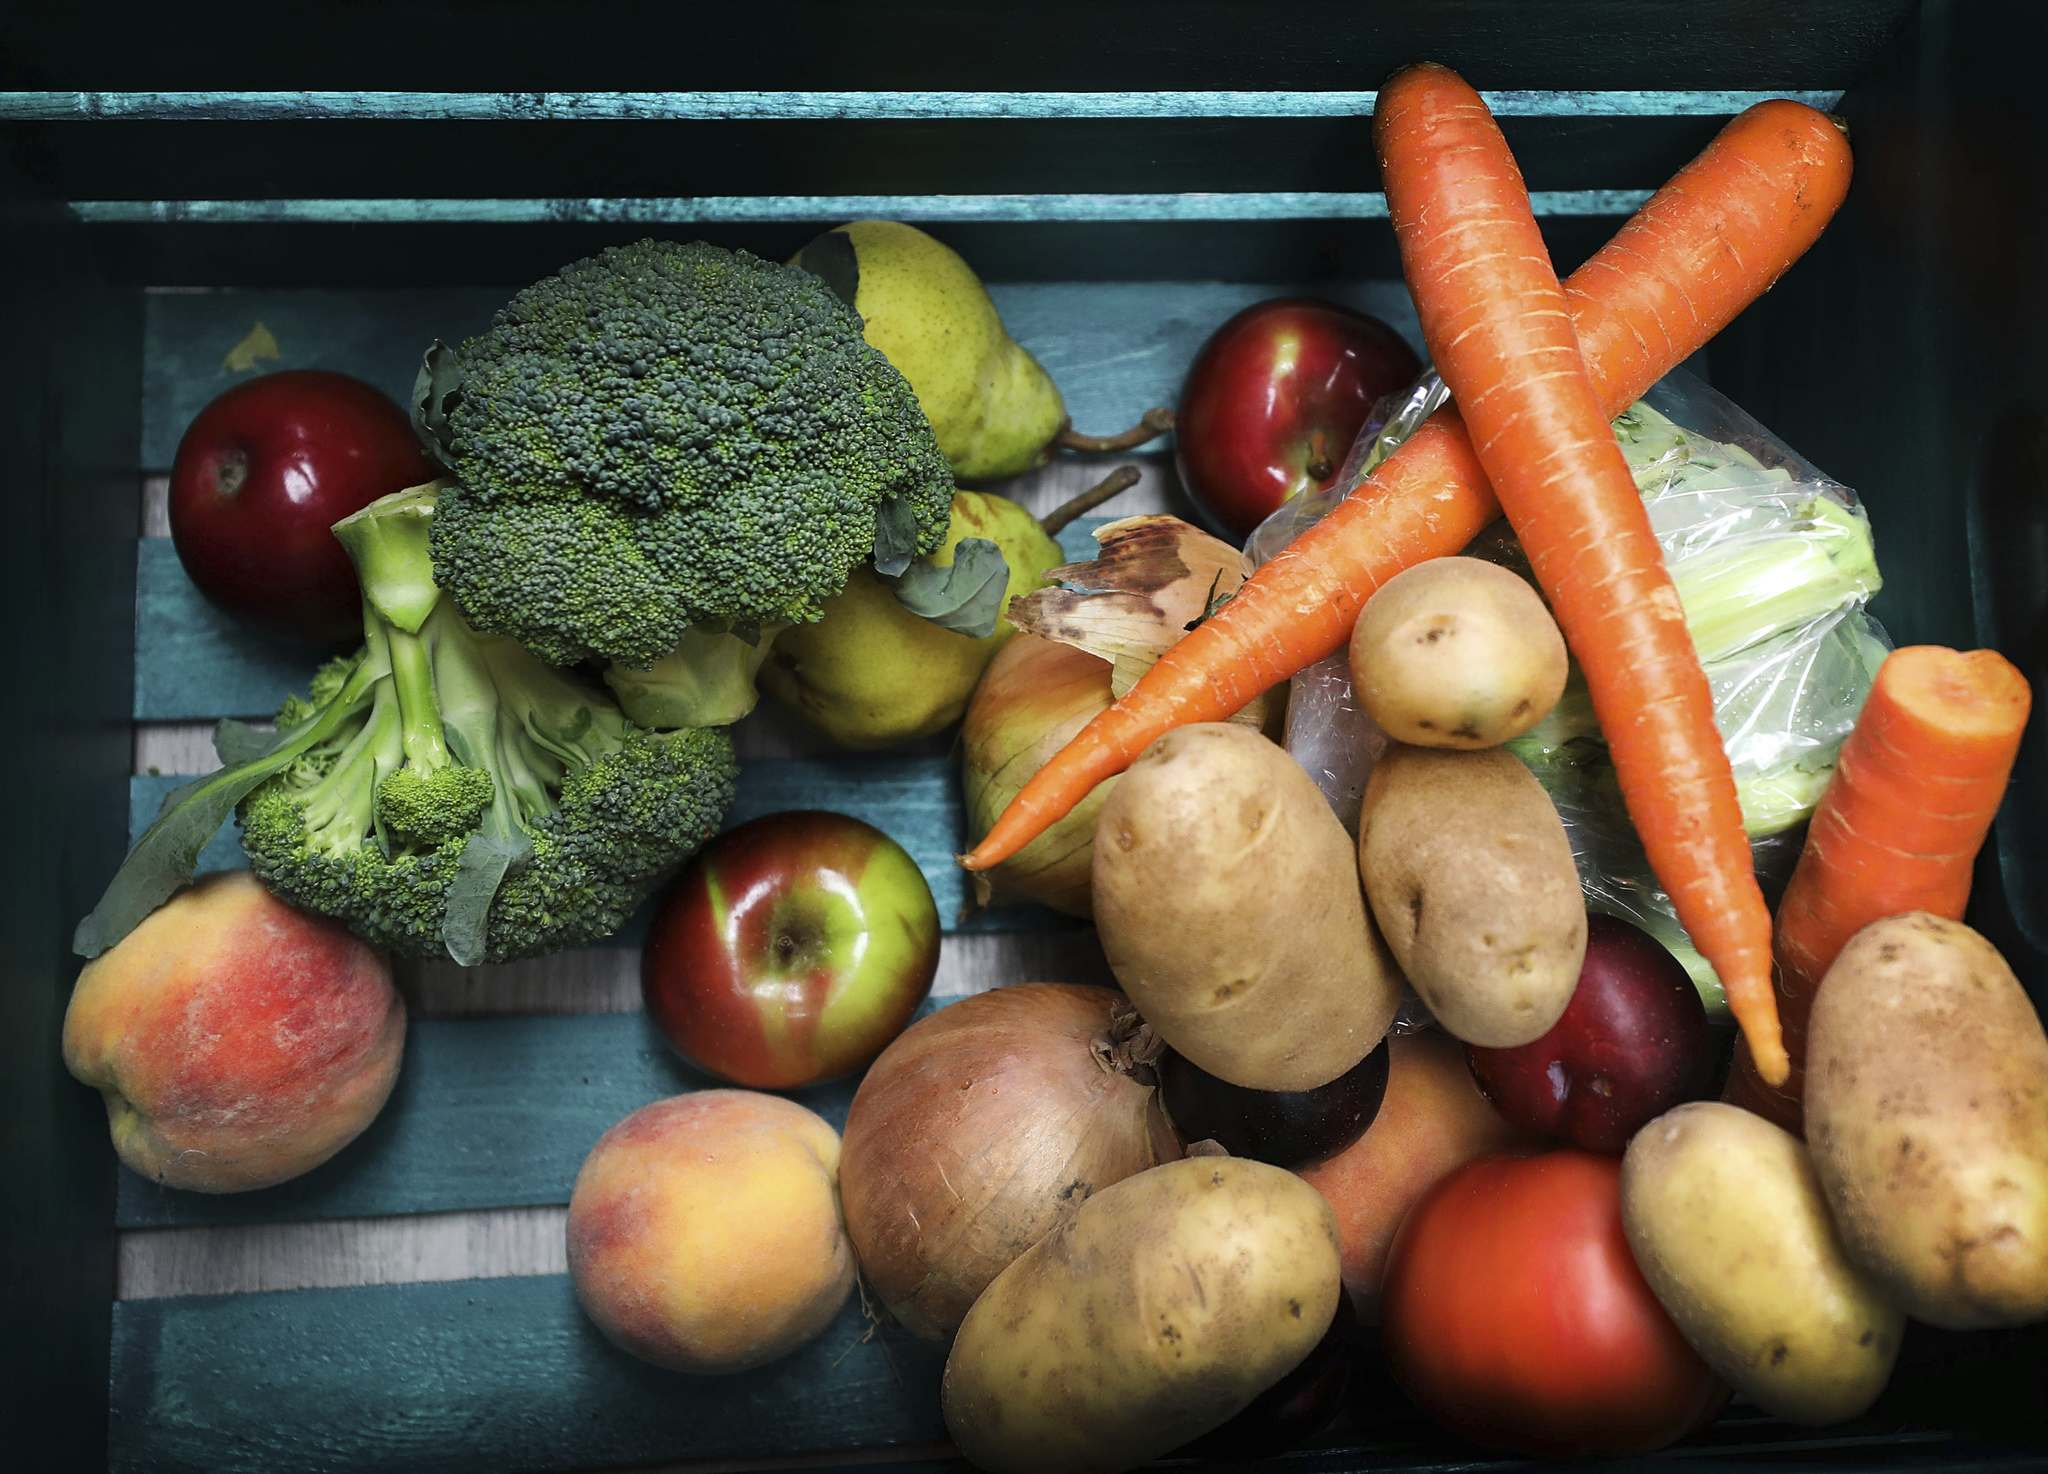 A crate half loaded with fresh fruits and veggies. More items will still go into the crate.